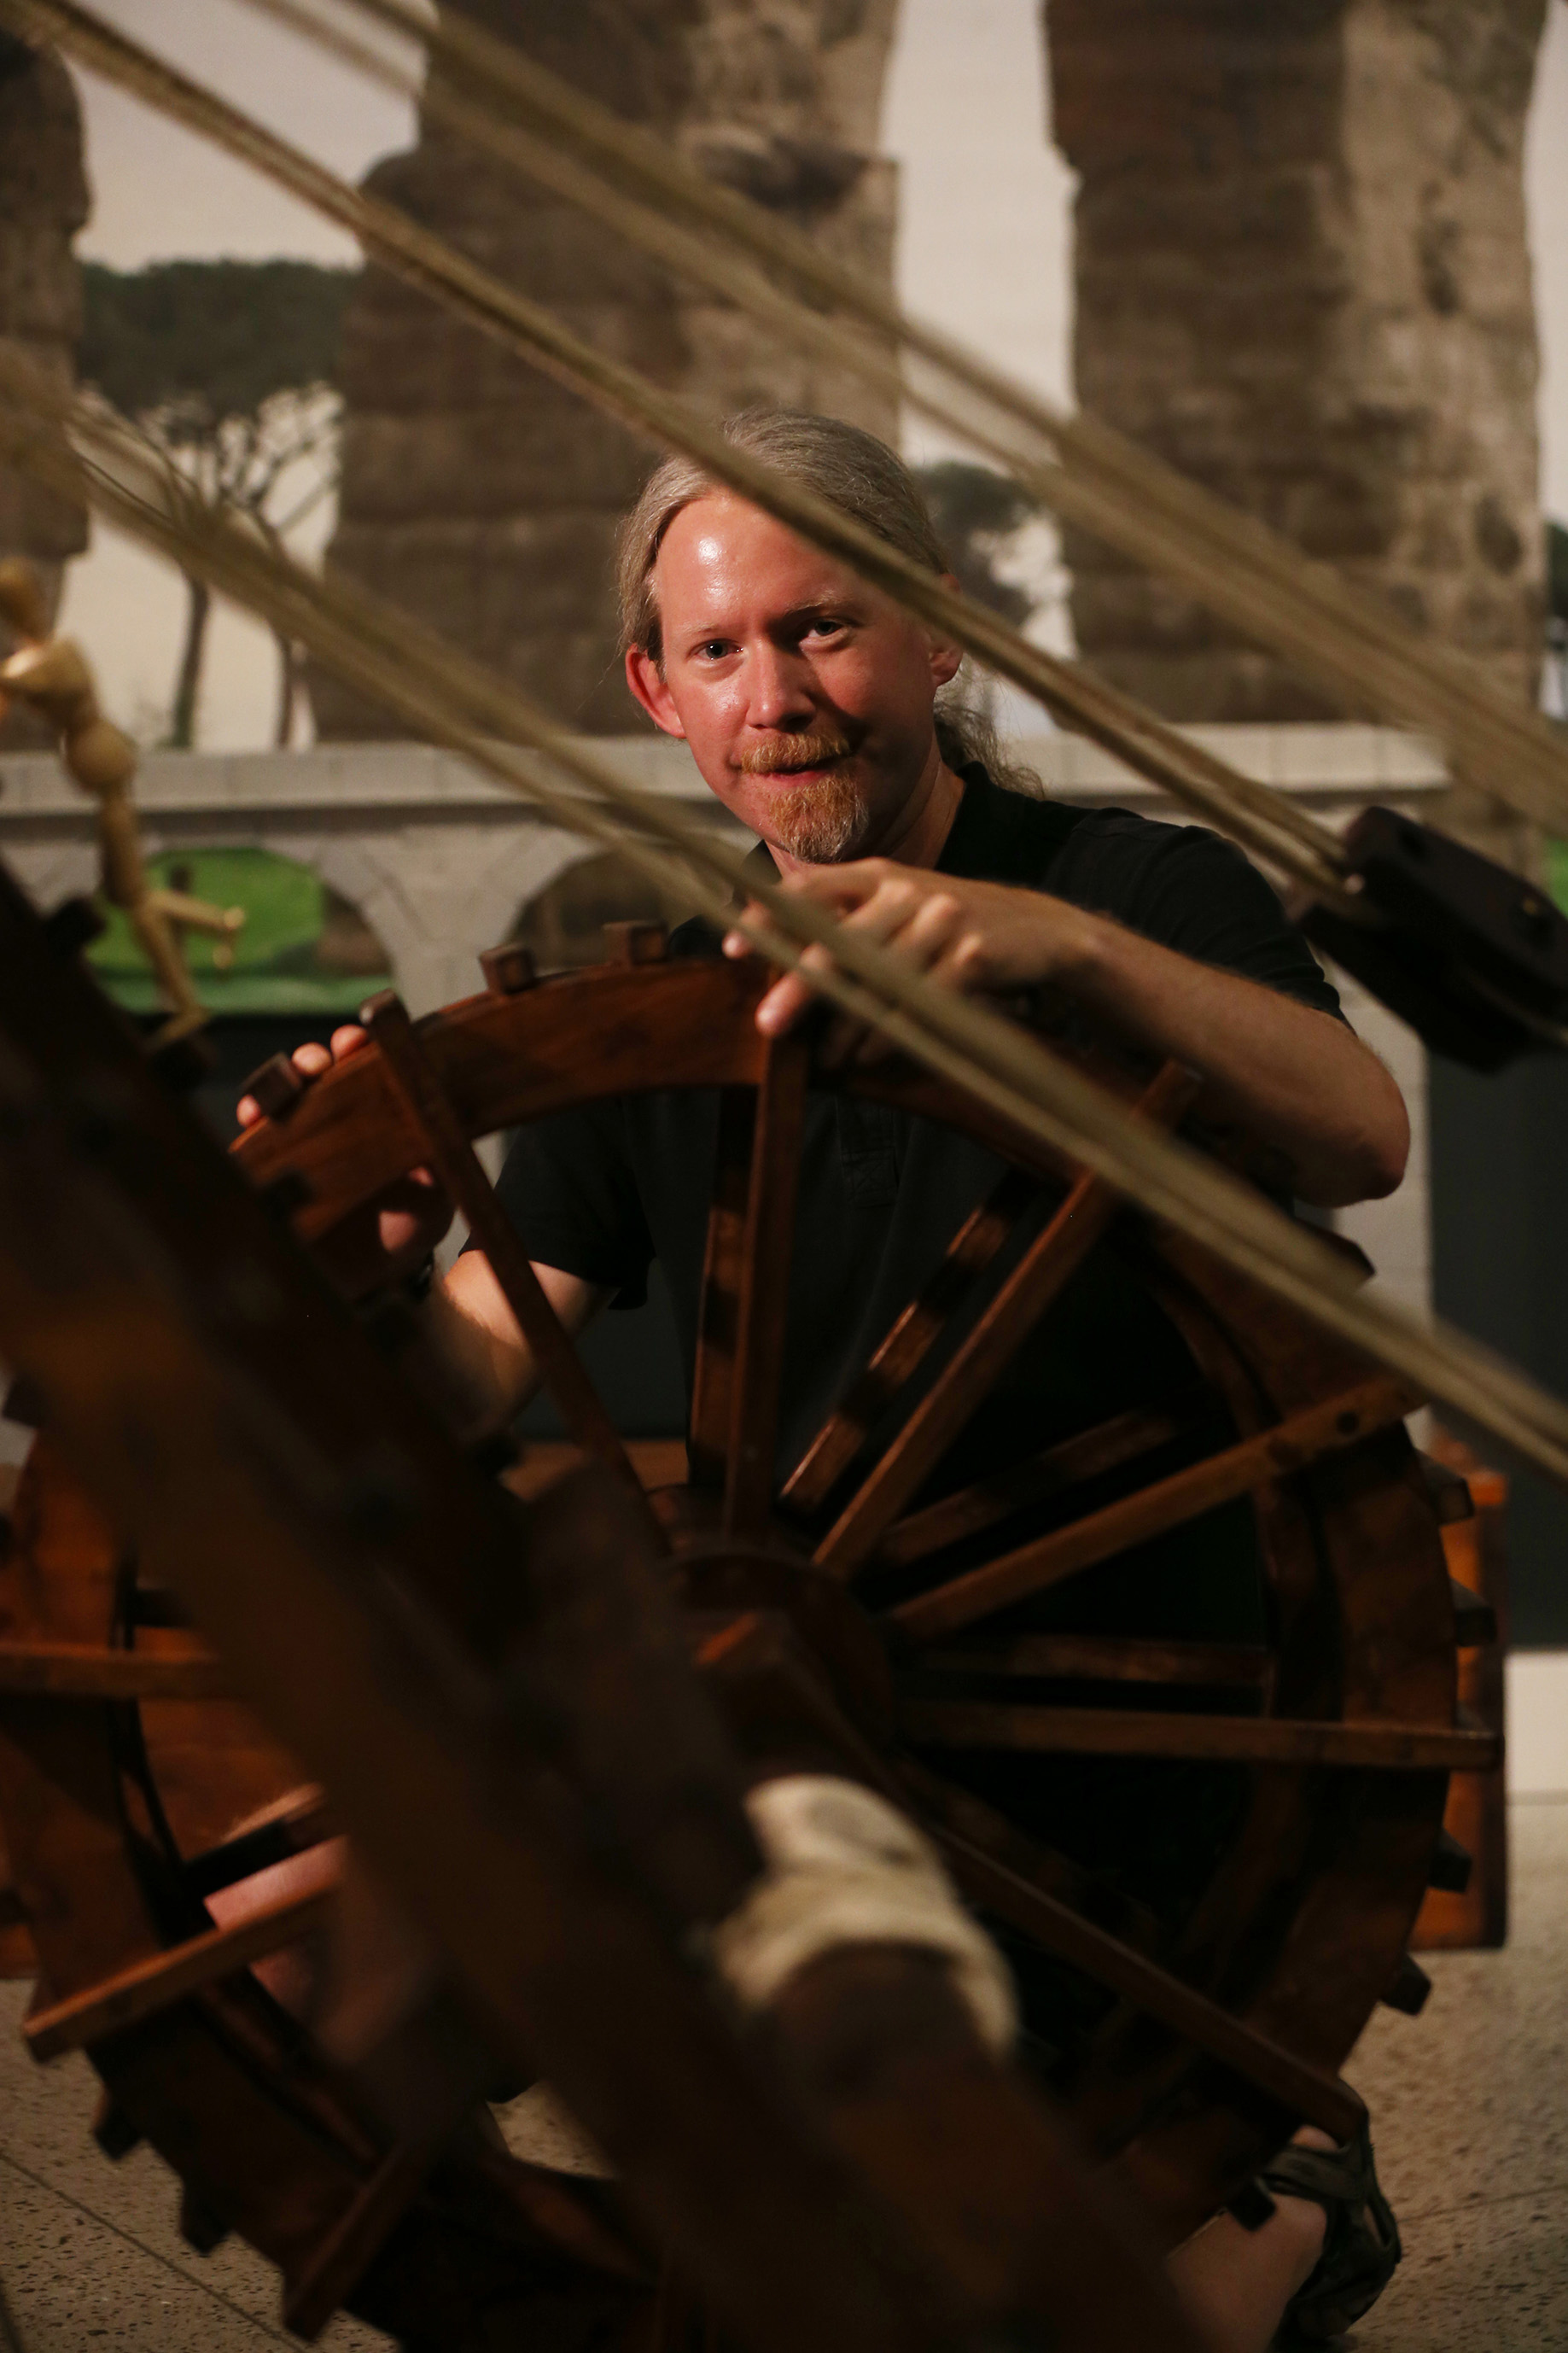 Inventions of Ancient Rome goes on display at museum